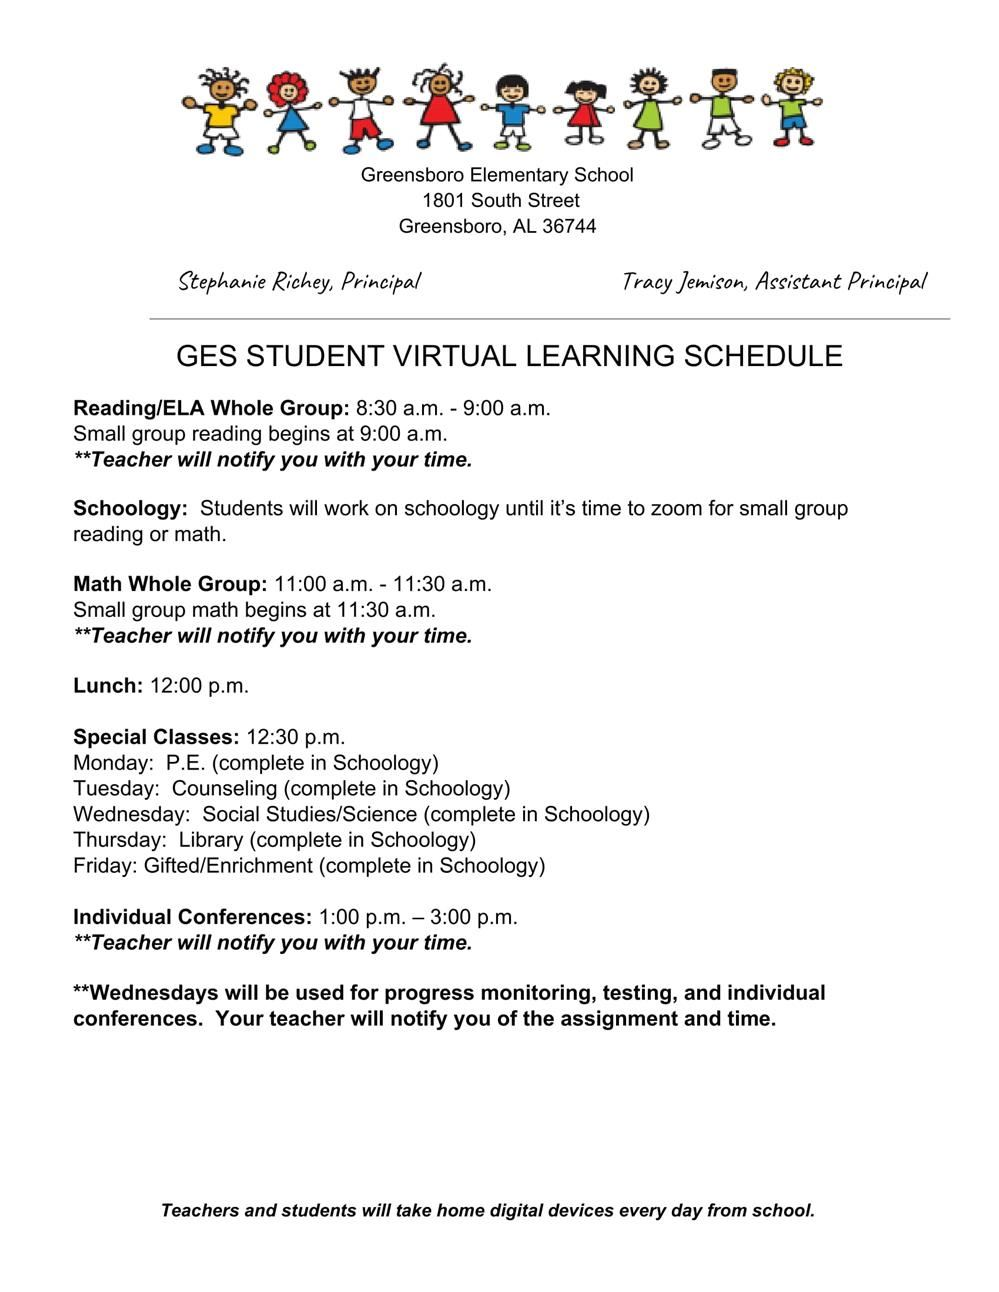 GES Virtual Learning Schedule